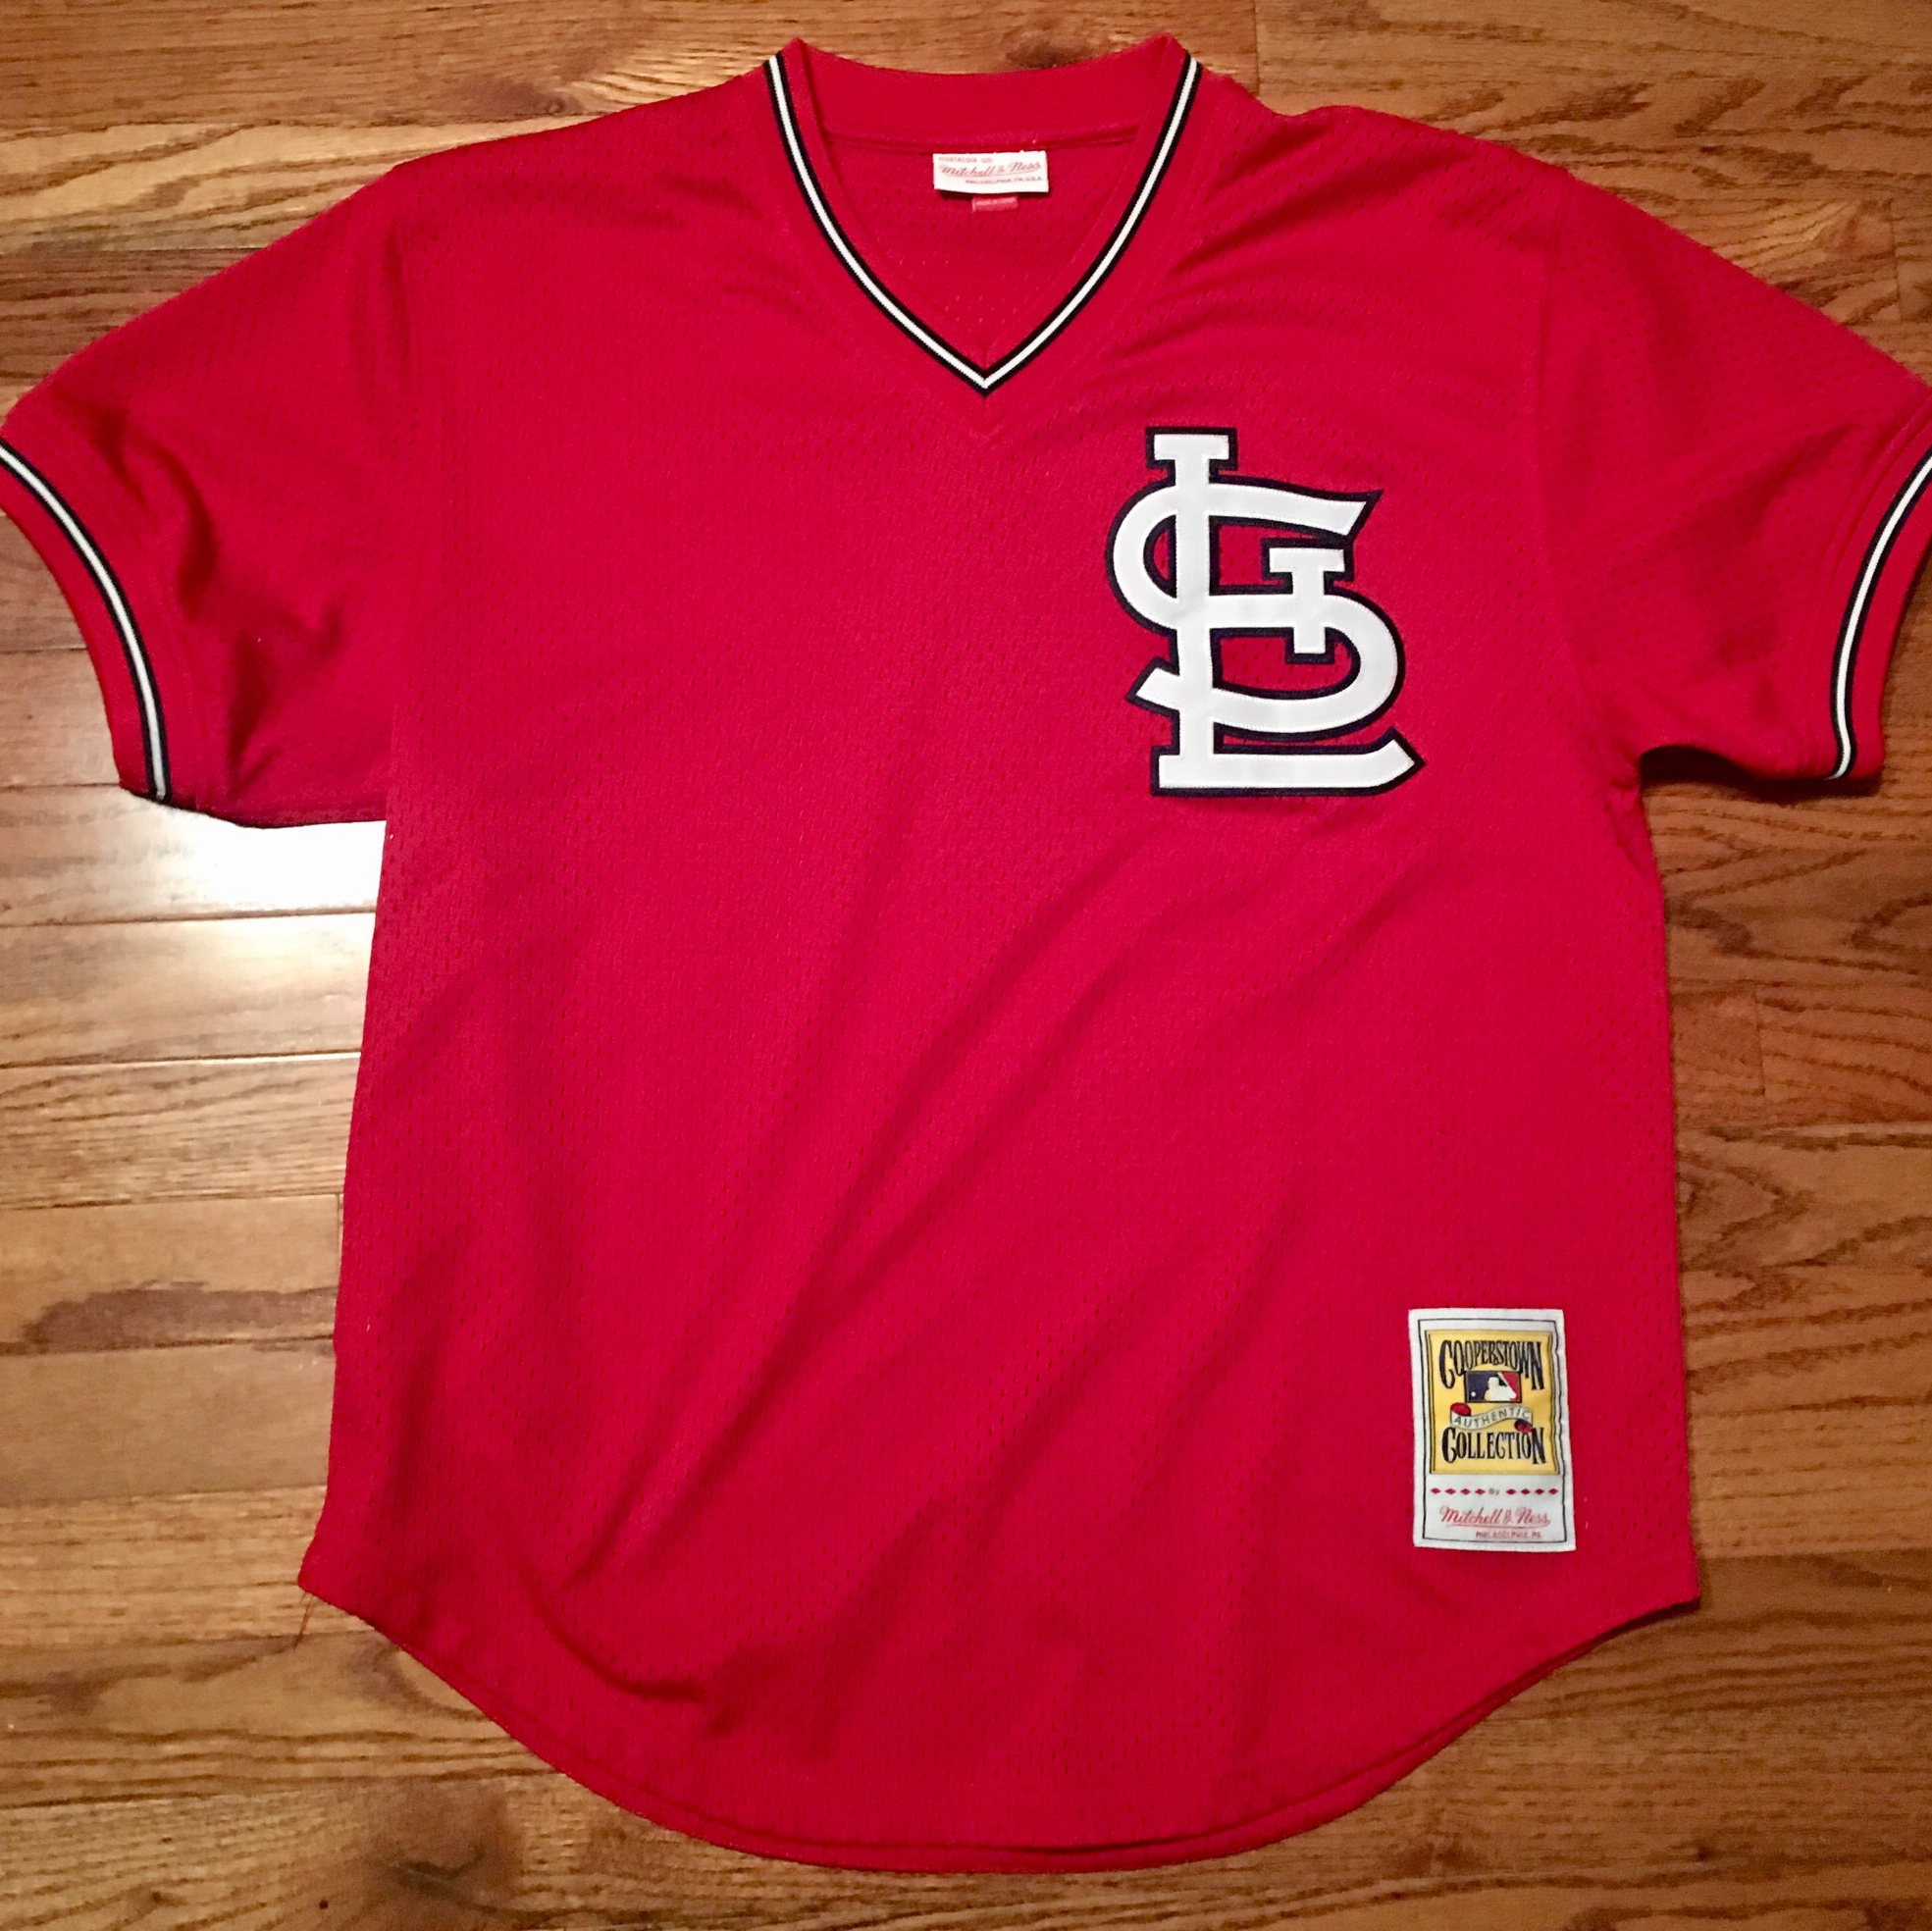 promo code 4a485 ab0b7 Authentic Cooperstown Collection St. Louis Cardinals... - Depop